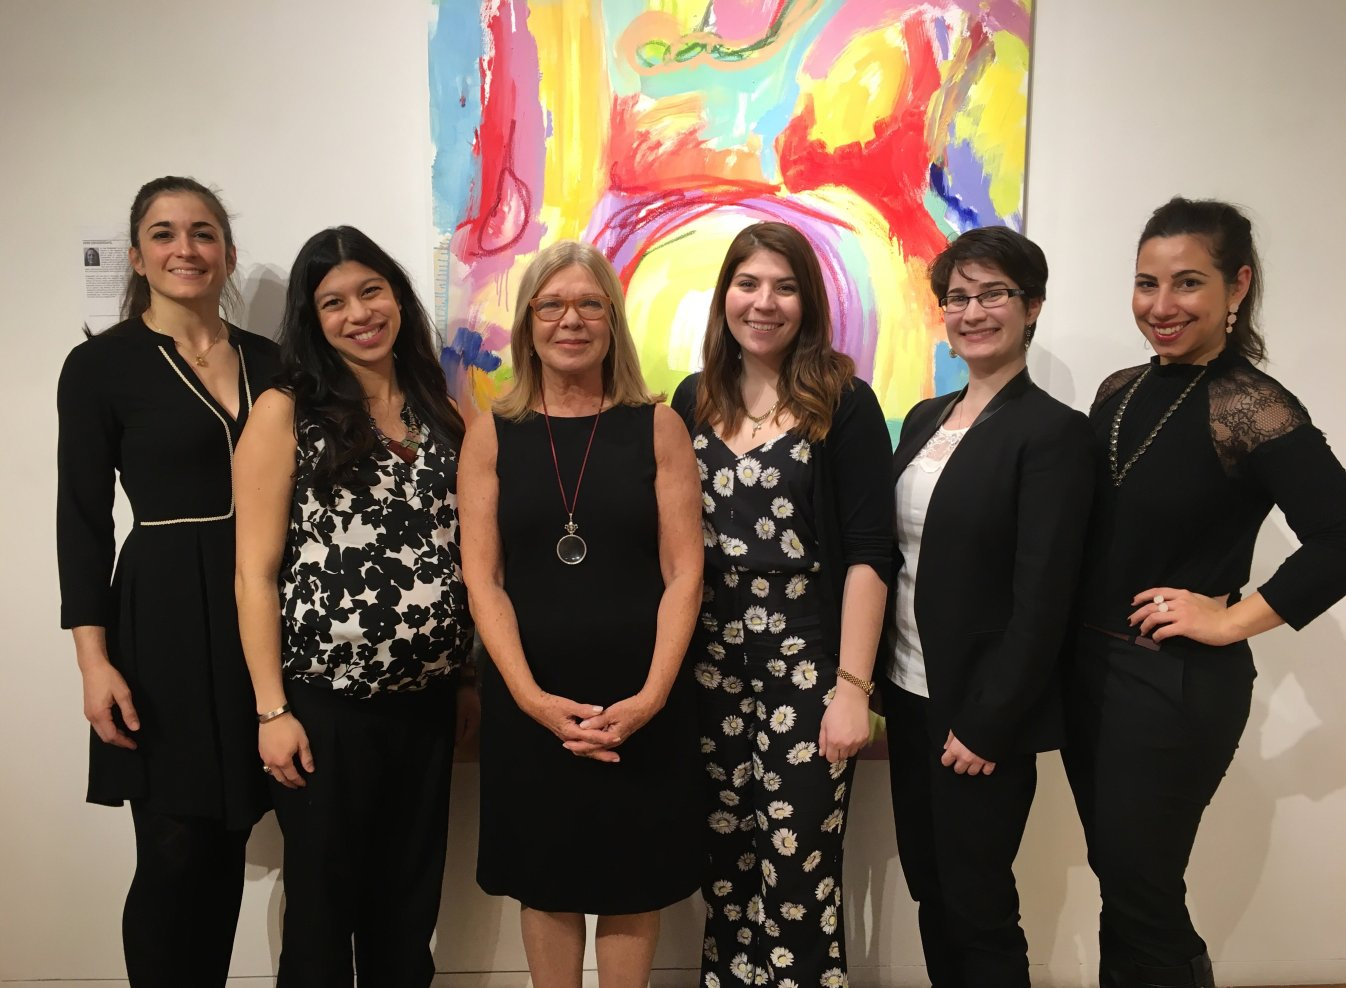 Woman in Art: Angela Di Bello and the ladies of Agora Gallry, 2016